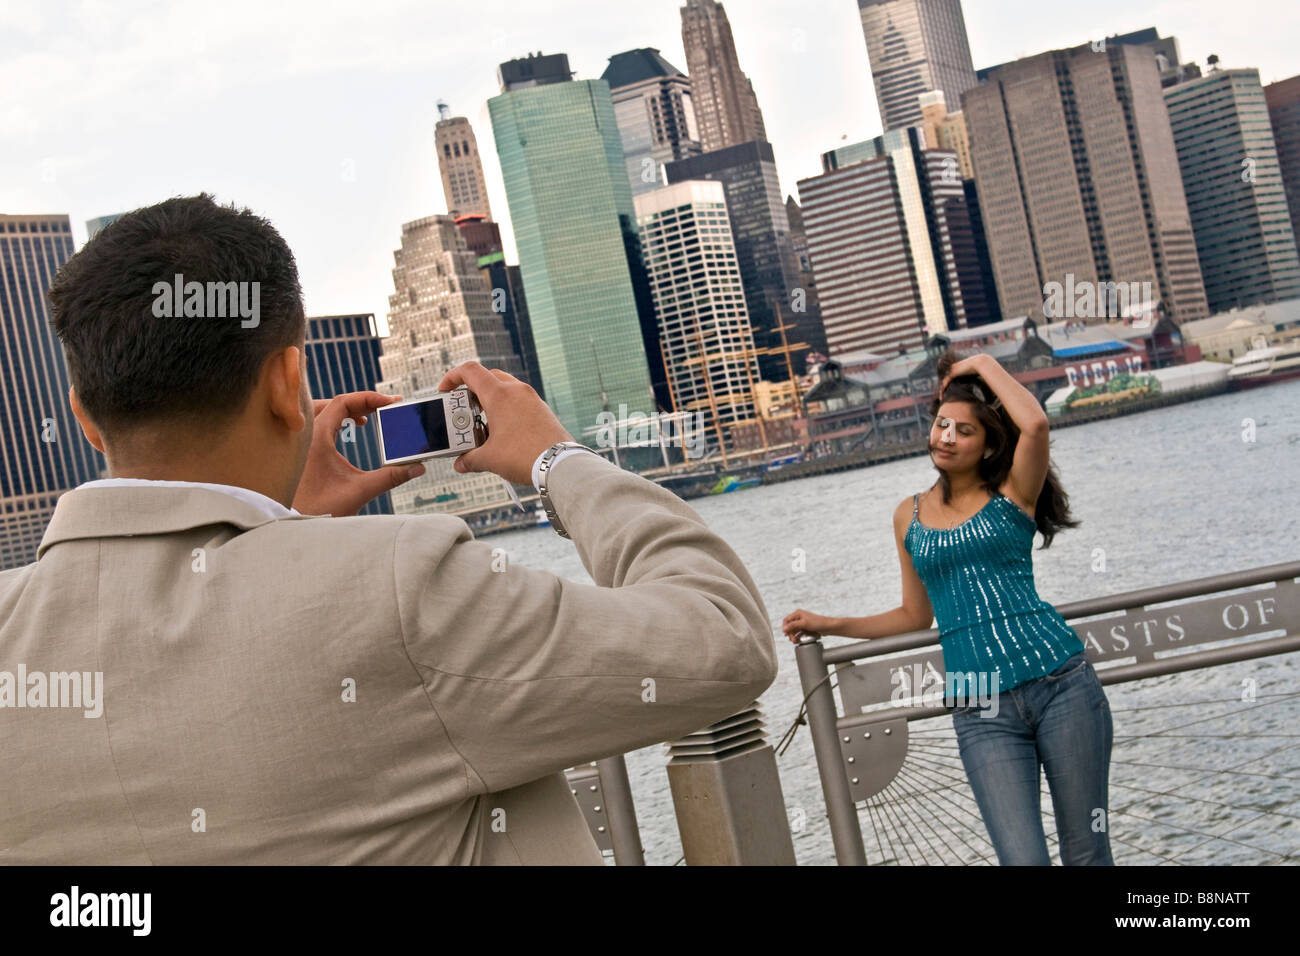 Young woman being photographed against the New York city skyline - Stock Image